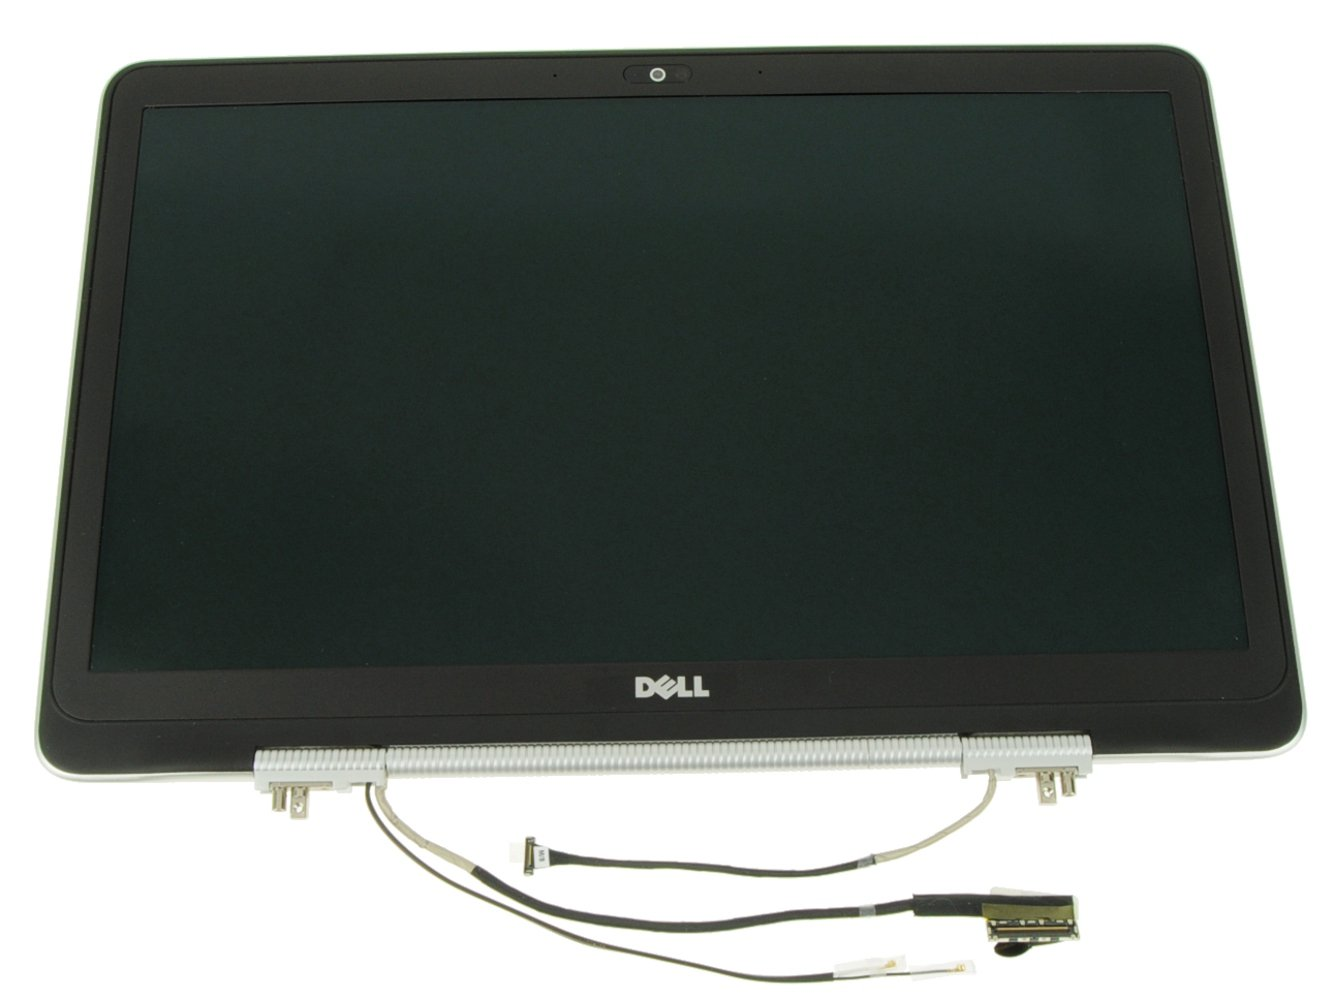 Dell XPS 15z (L511z) 15.6'' HD LCD Screen Display Complete Assembly with Web Camera